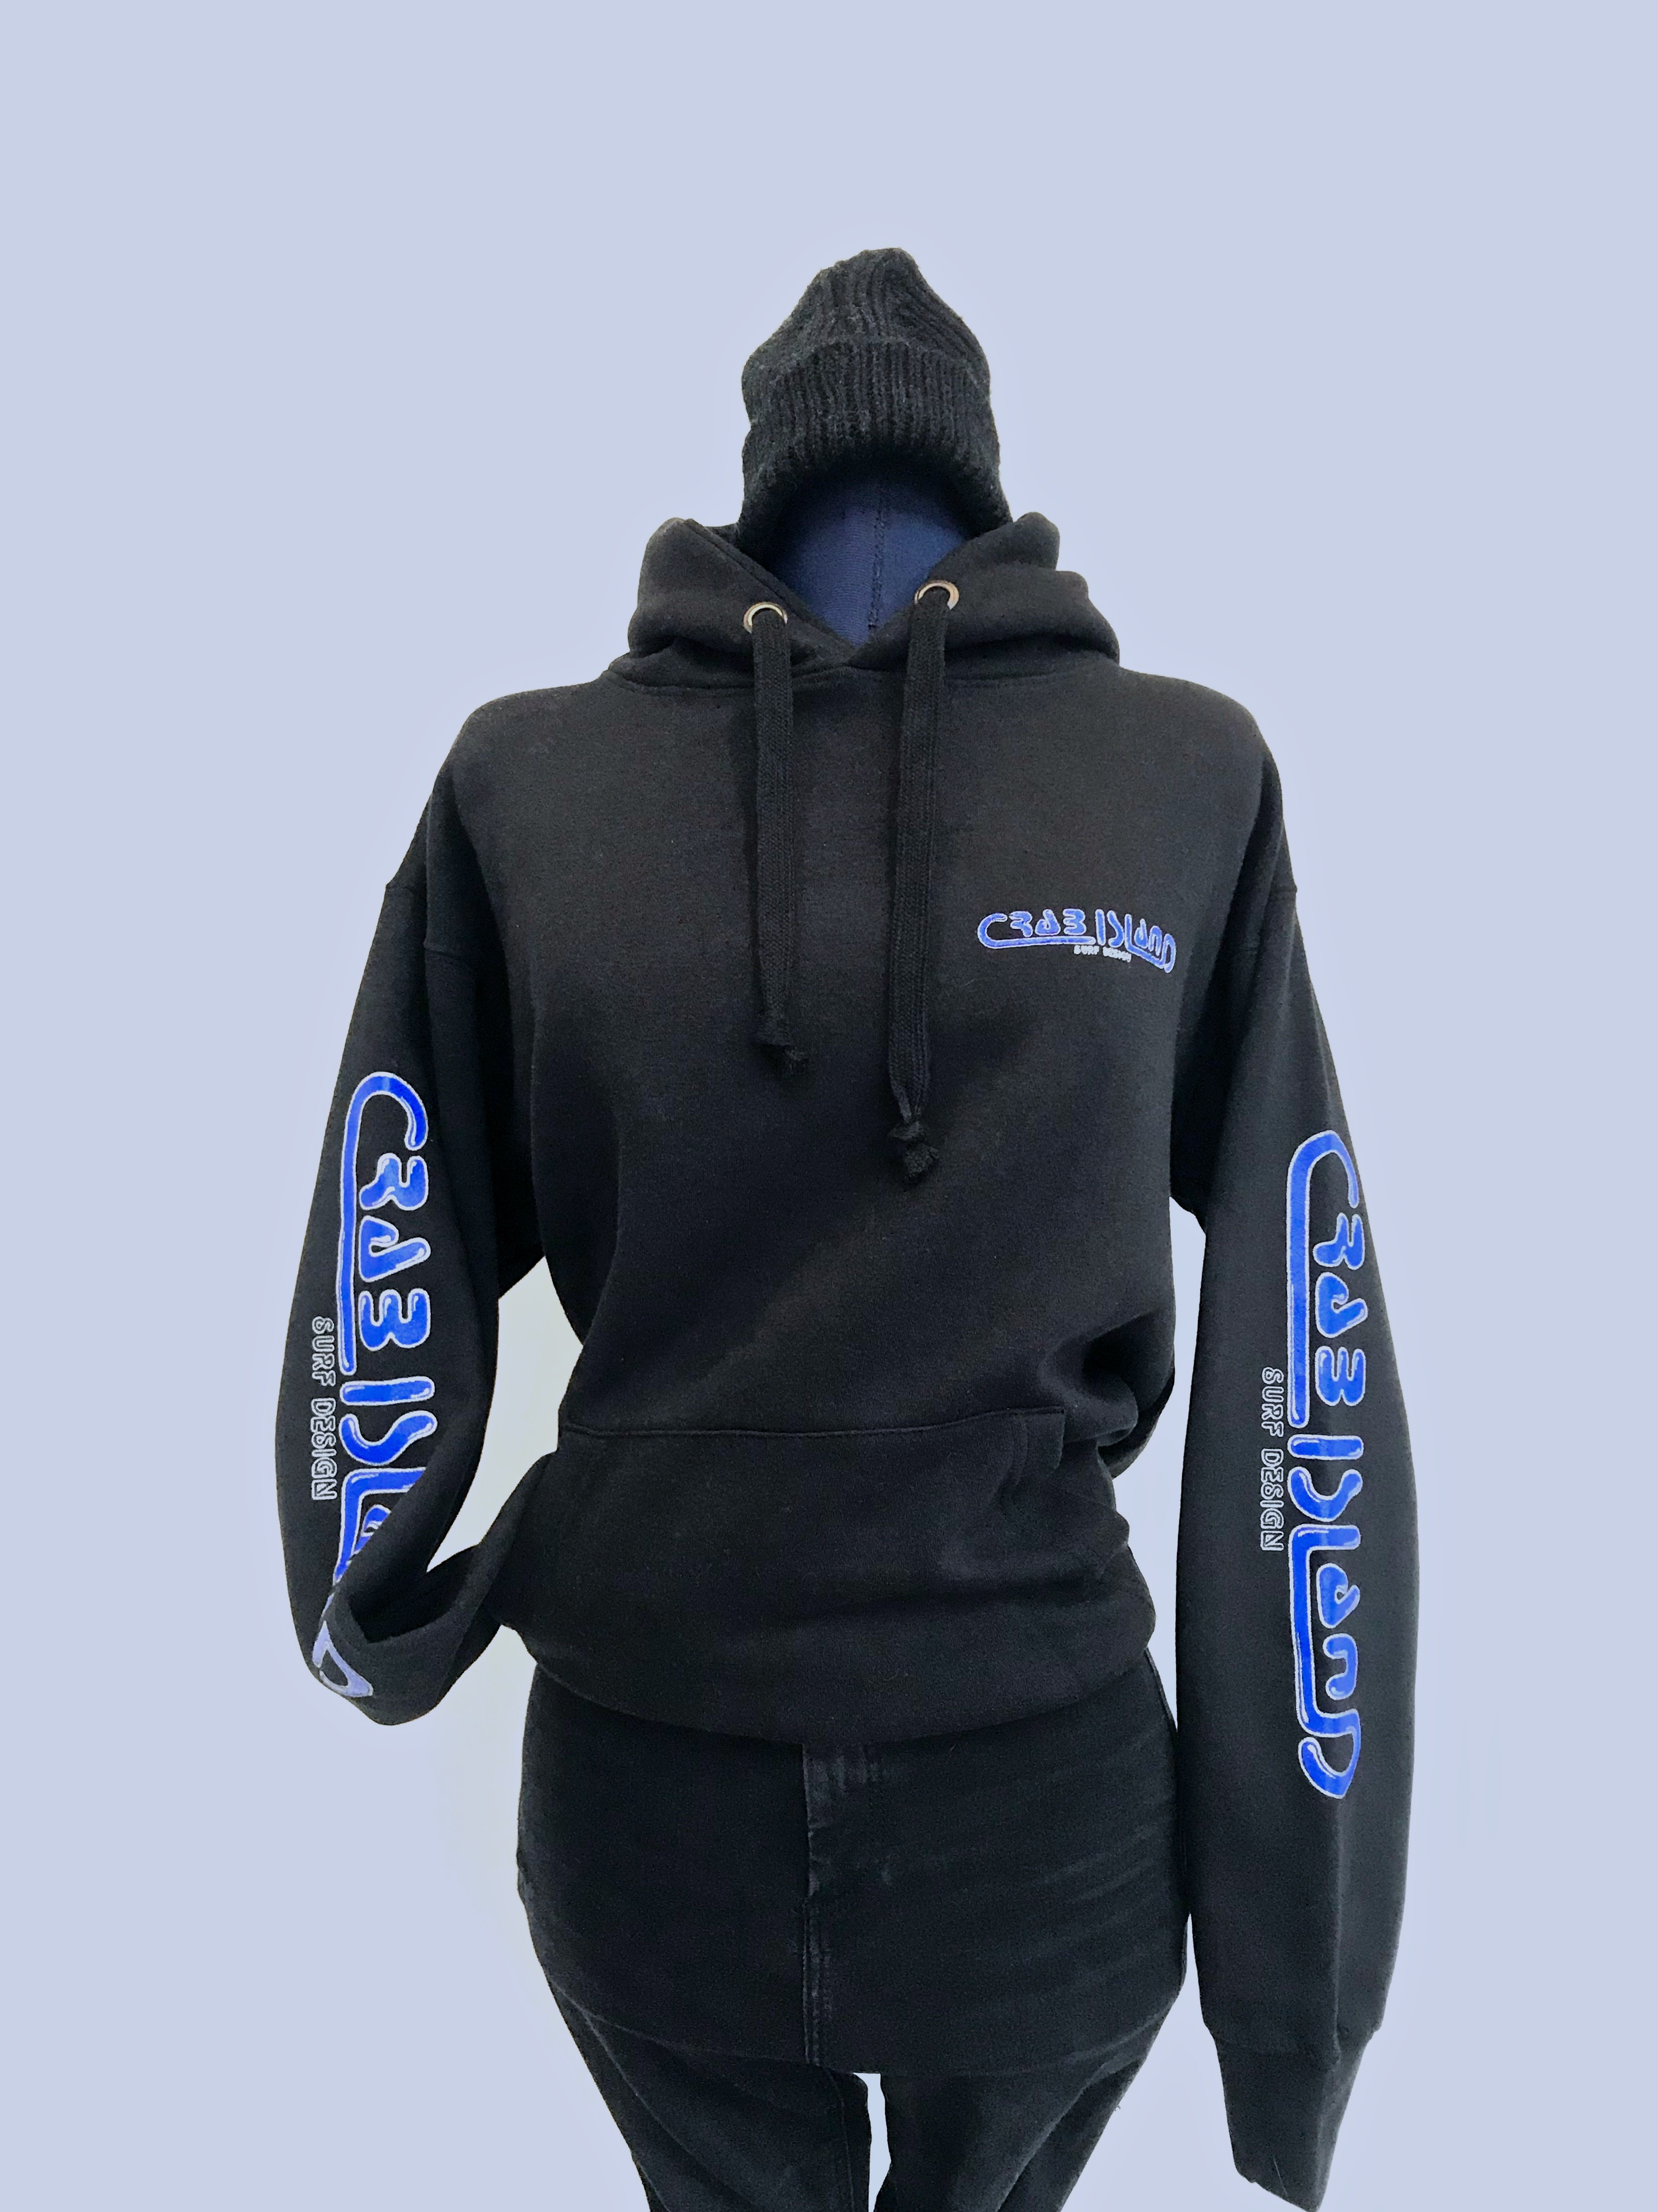 Black hoodie with Crab Island Surf Designs logo